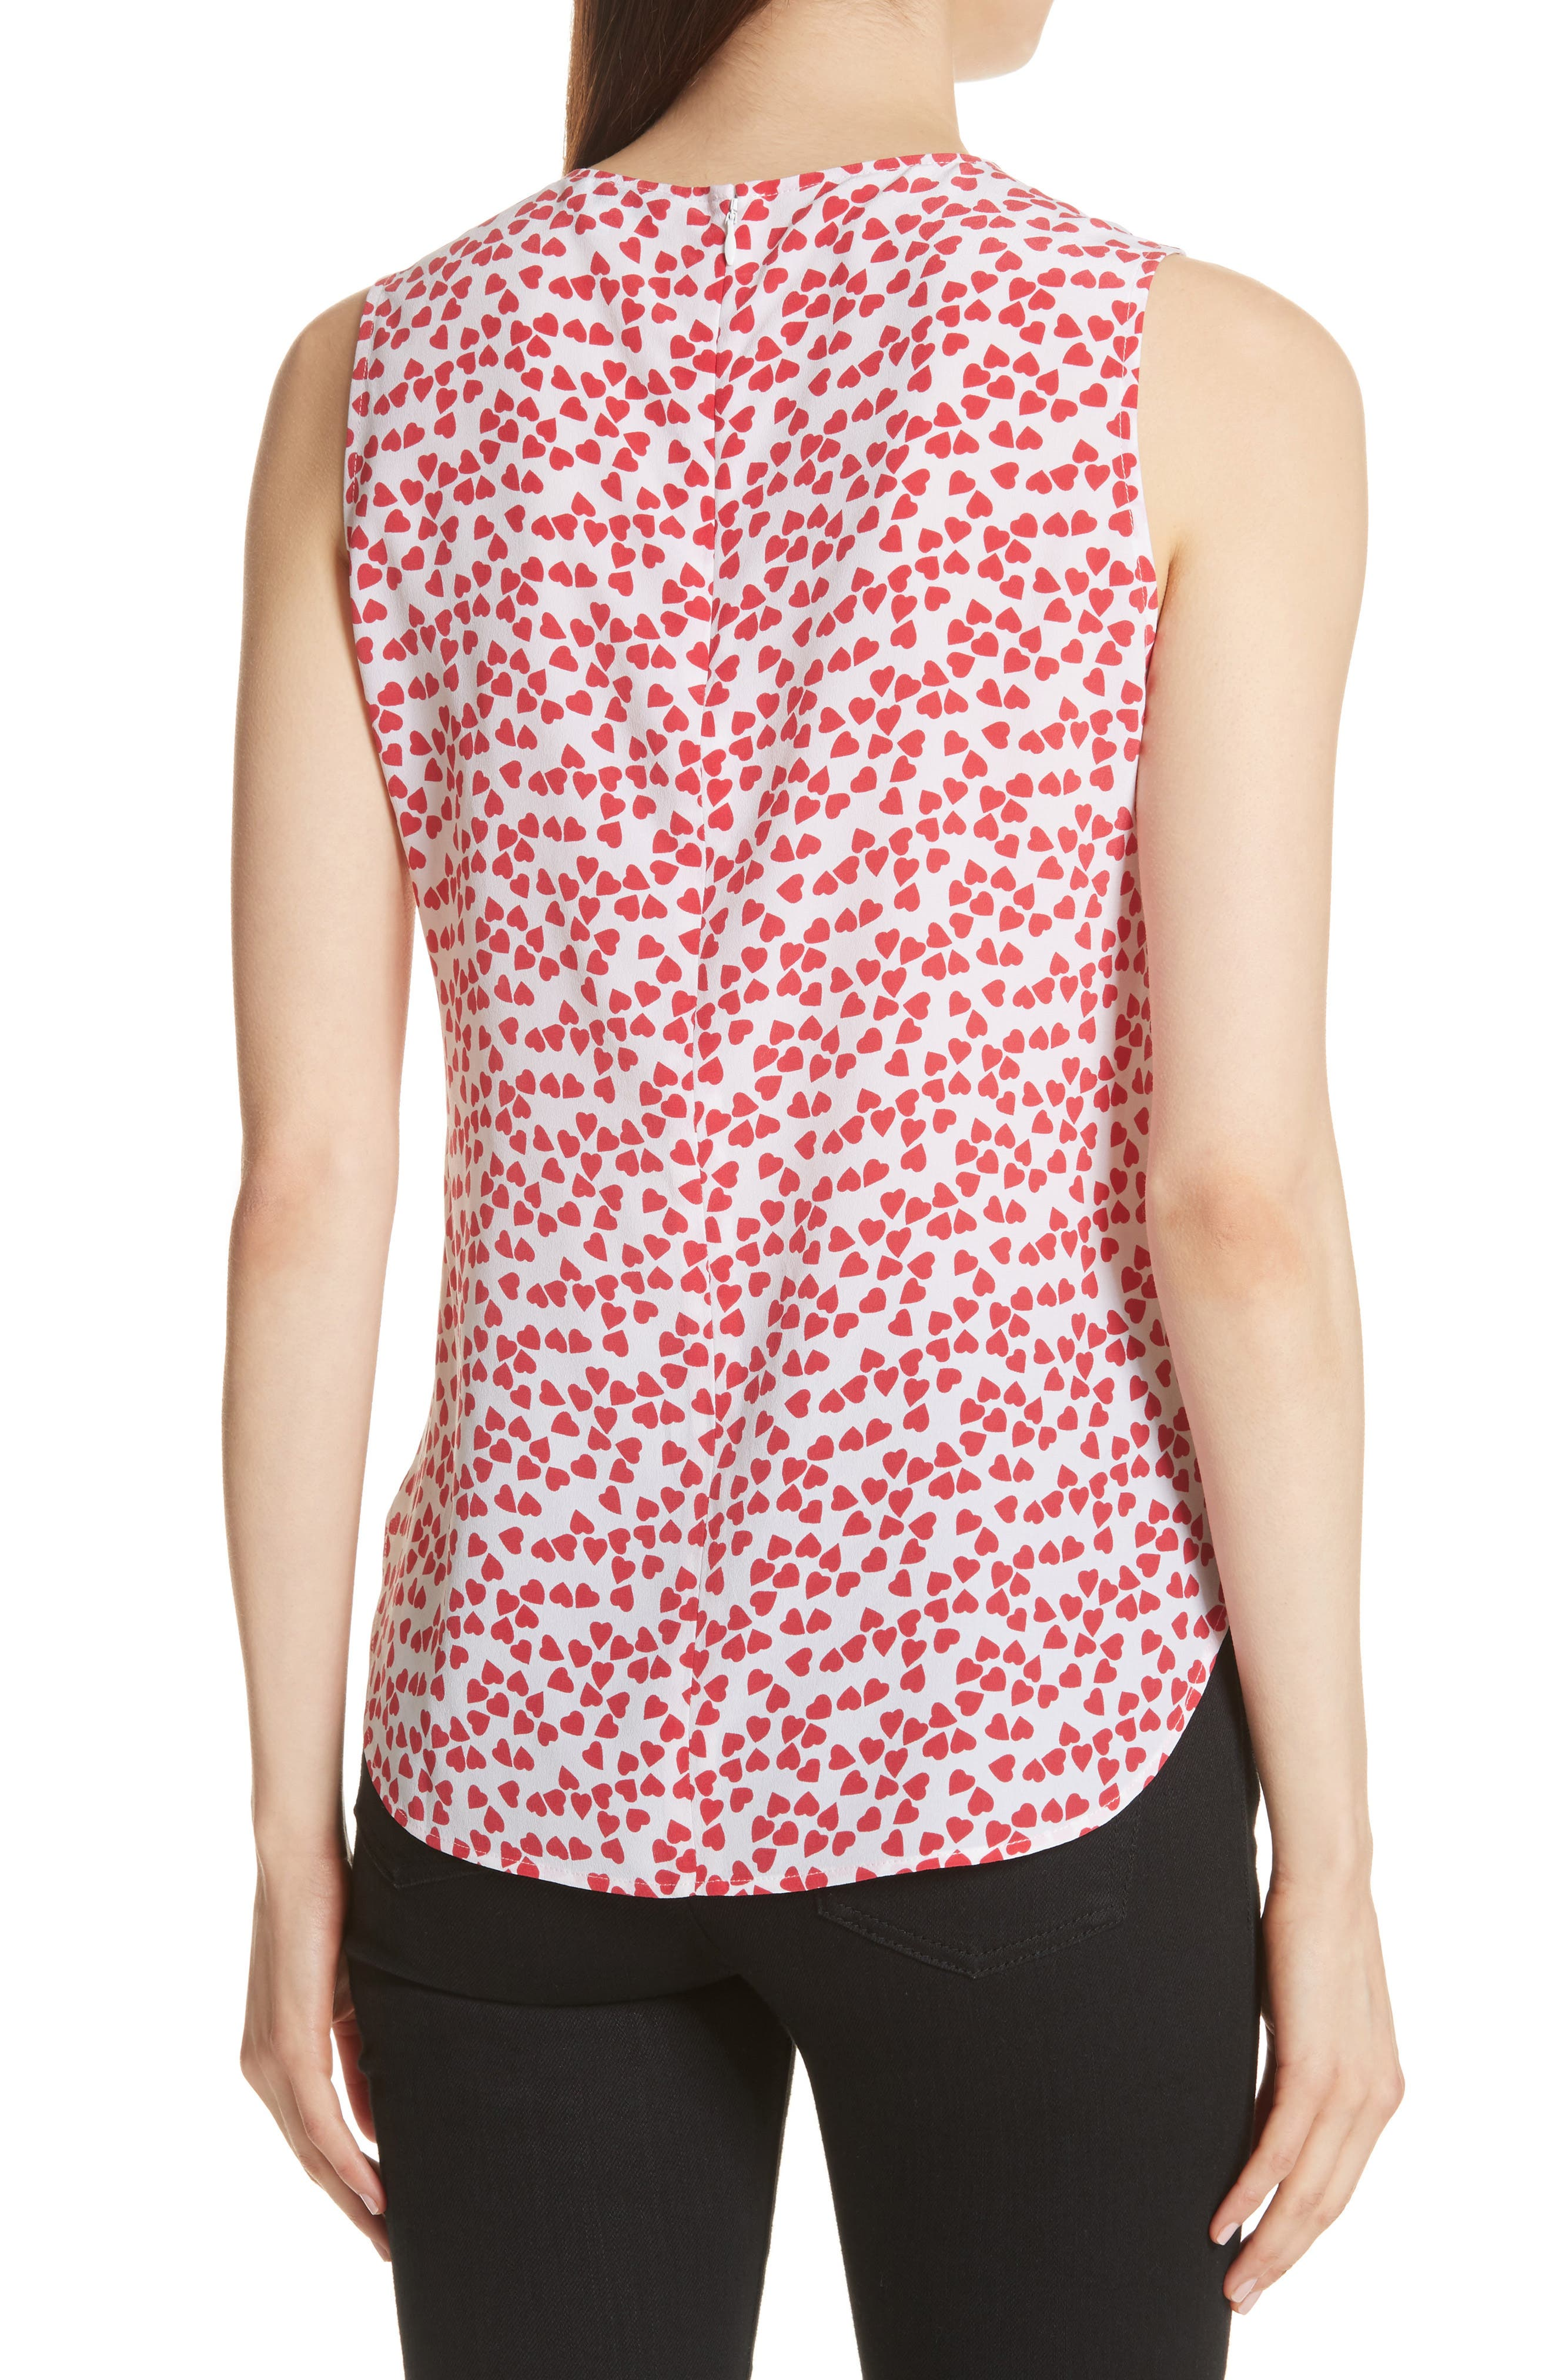 Lyle Print Silk Sleeveless Top,                             Alternate thumbnail 2, color,                             Bright White-Charged Pink